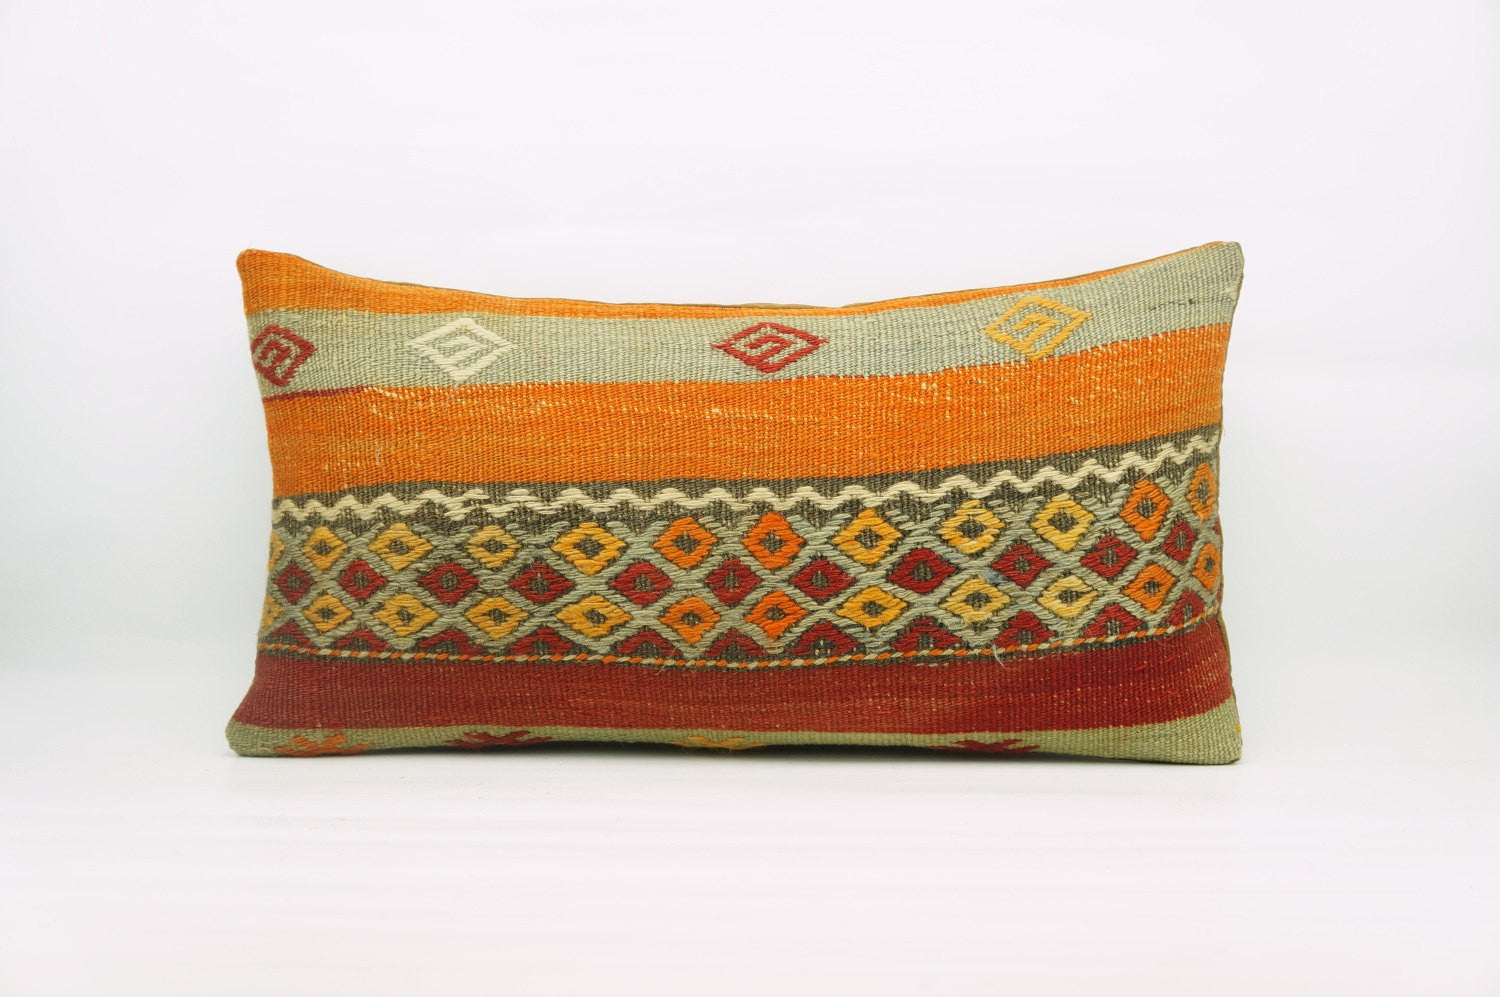 12x24  Geometric kilim pillow sham, Tribal cushion cover, Striped Handwoven pillowcase , mid century decor multi colour 1220